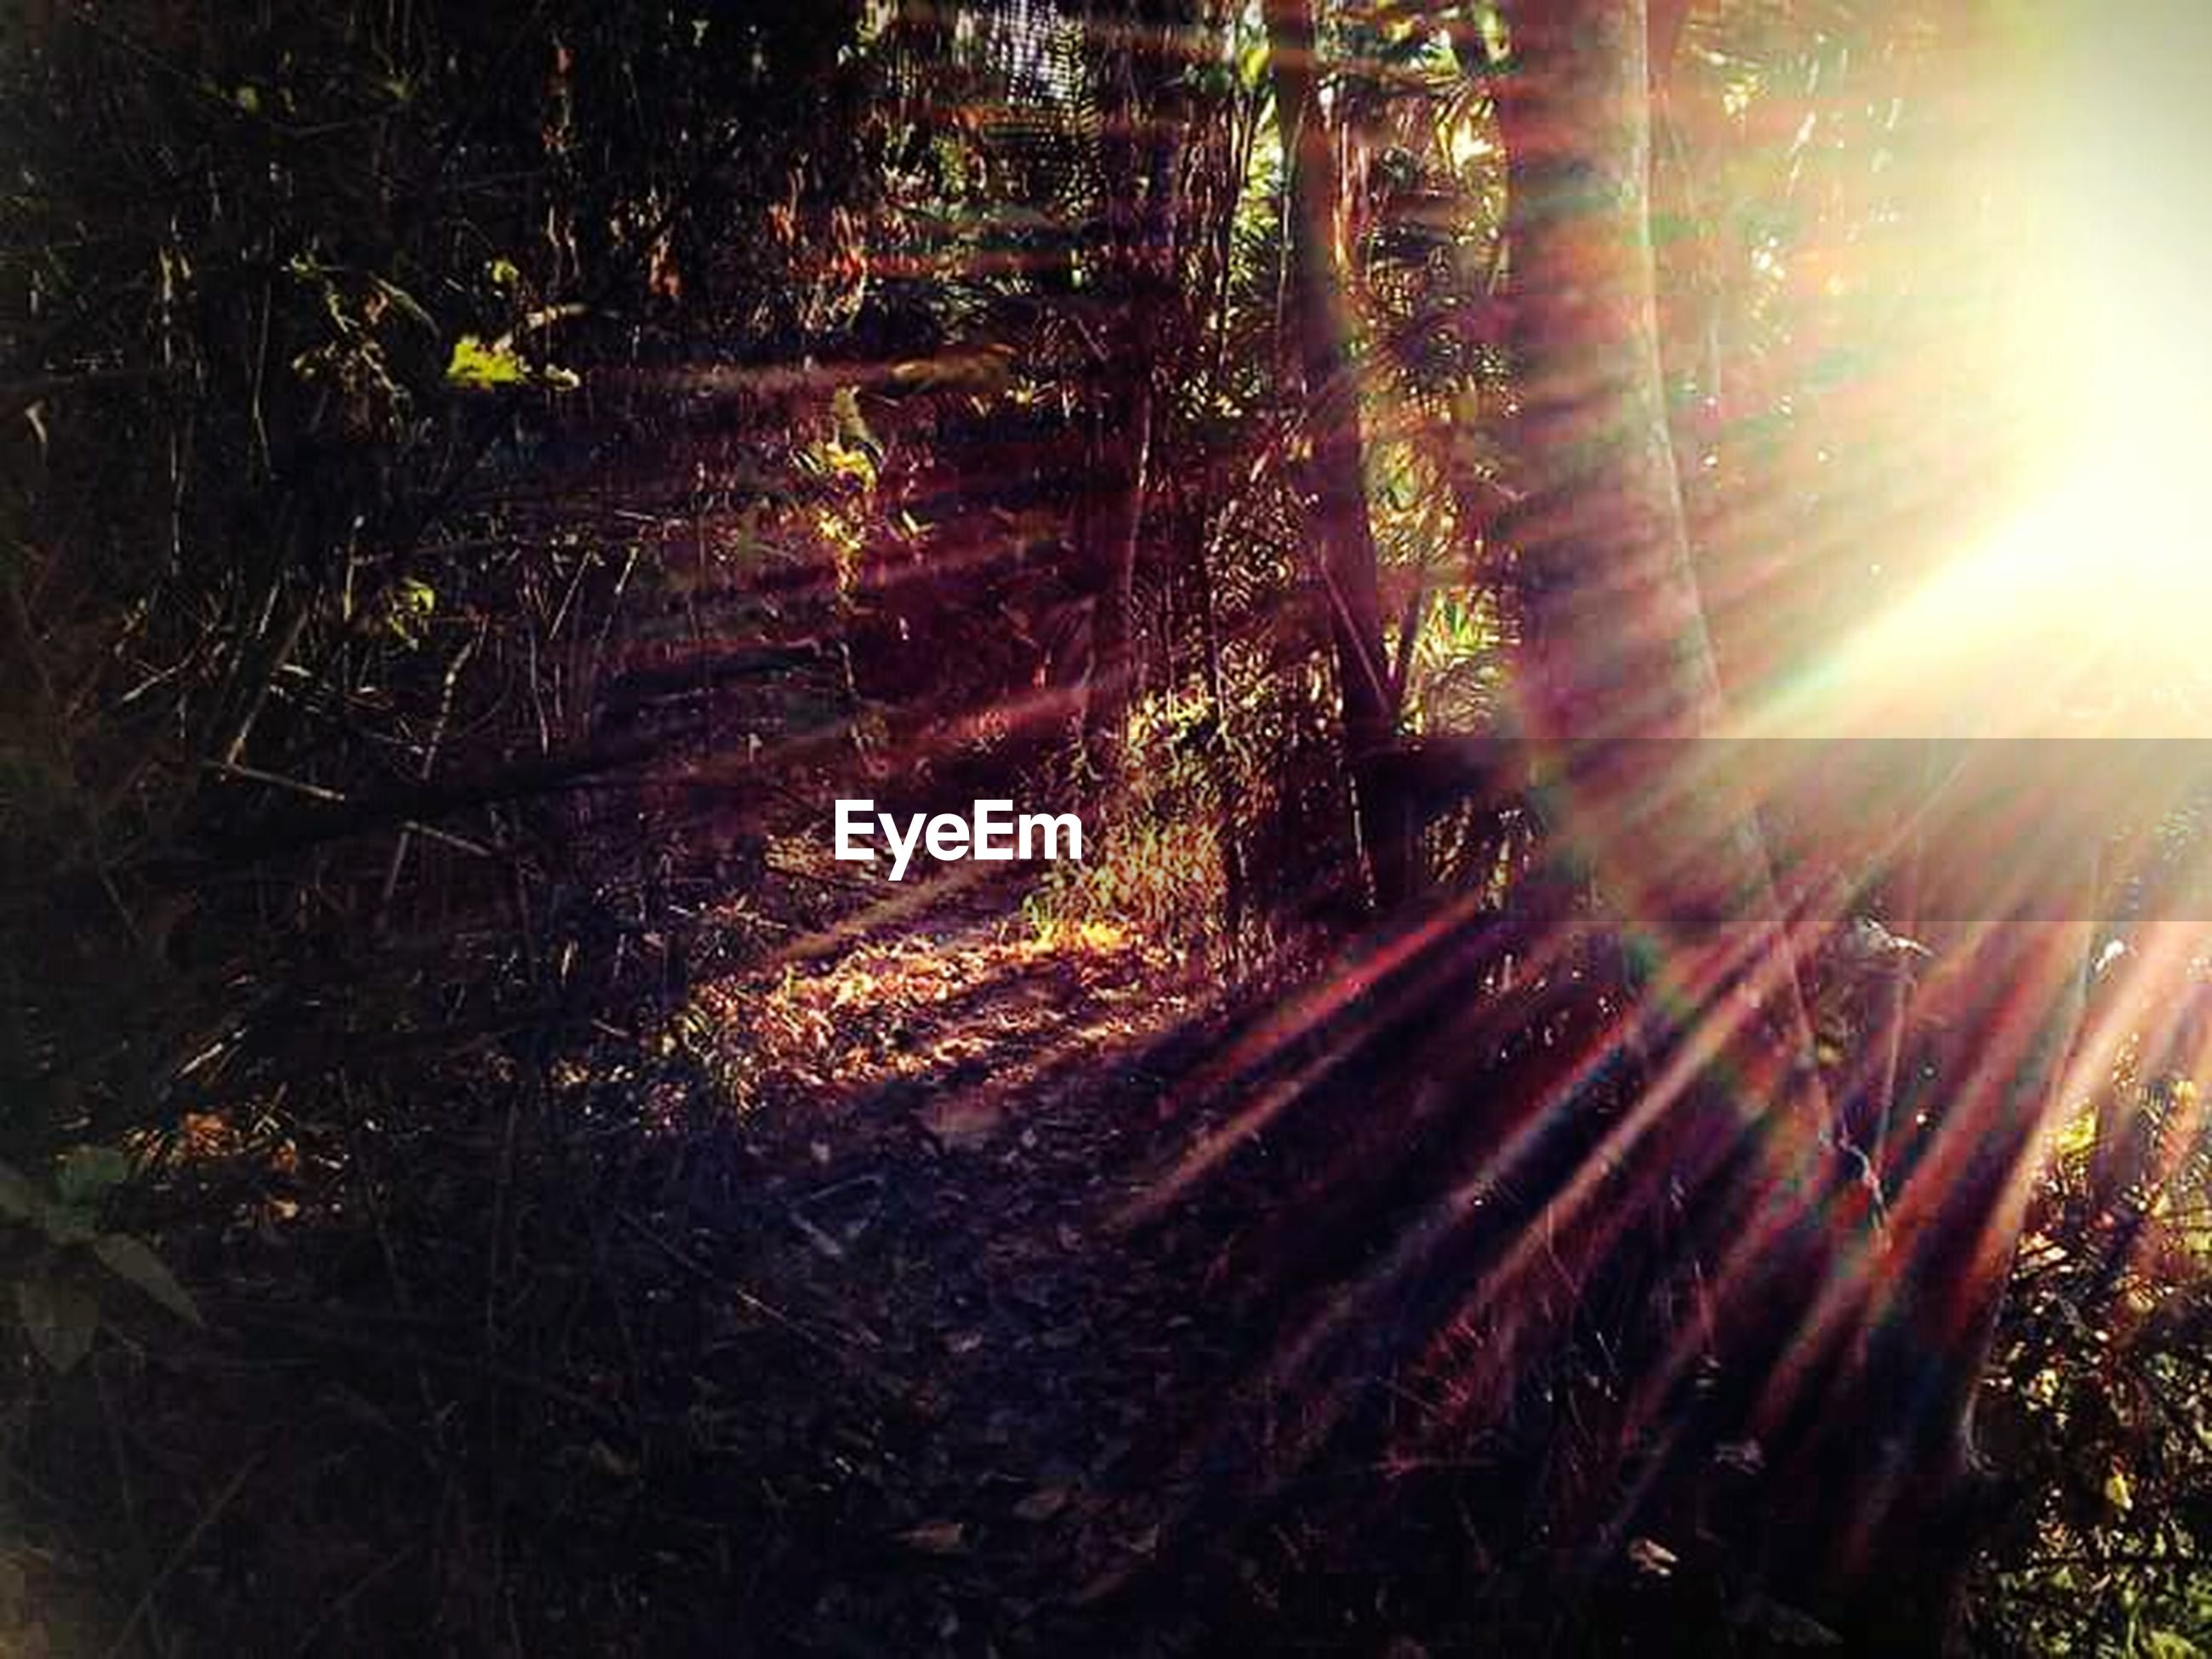 sunbeam, sun, lens flare, sunlight, tree, forest, tranquility, nature, growth, woodland, beauty in nature, tranquil scene, tree trunk, glowing, back lit, outdoors, scenics, no people, plant, sunset